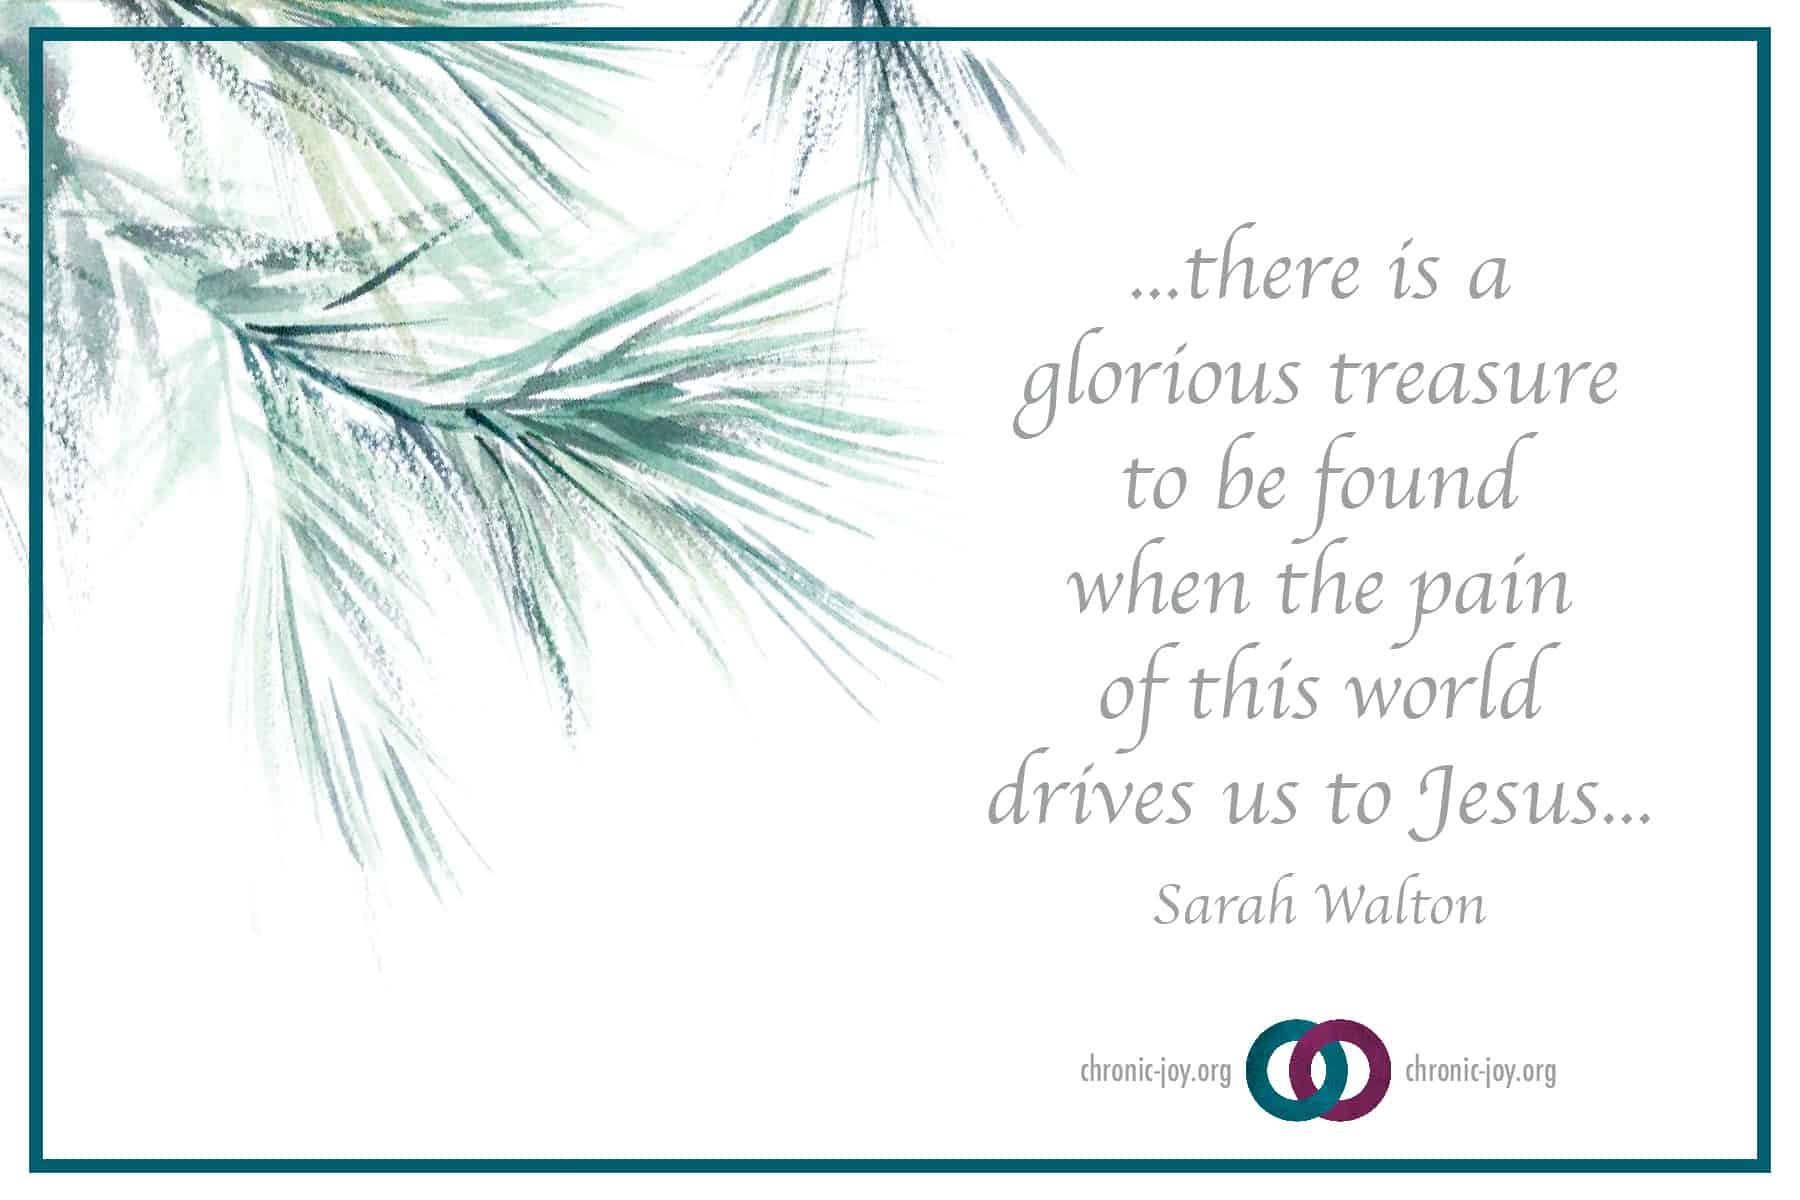 ...there is a glorious treasure to be found when the pain of this this world drives us to Jesus...